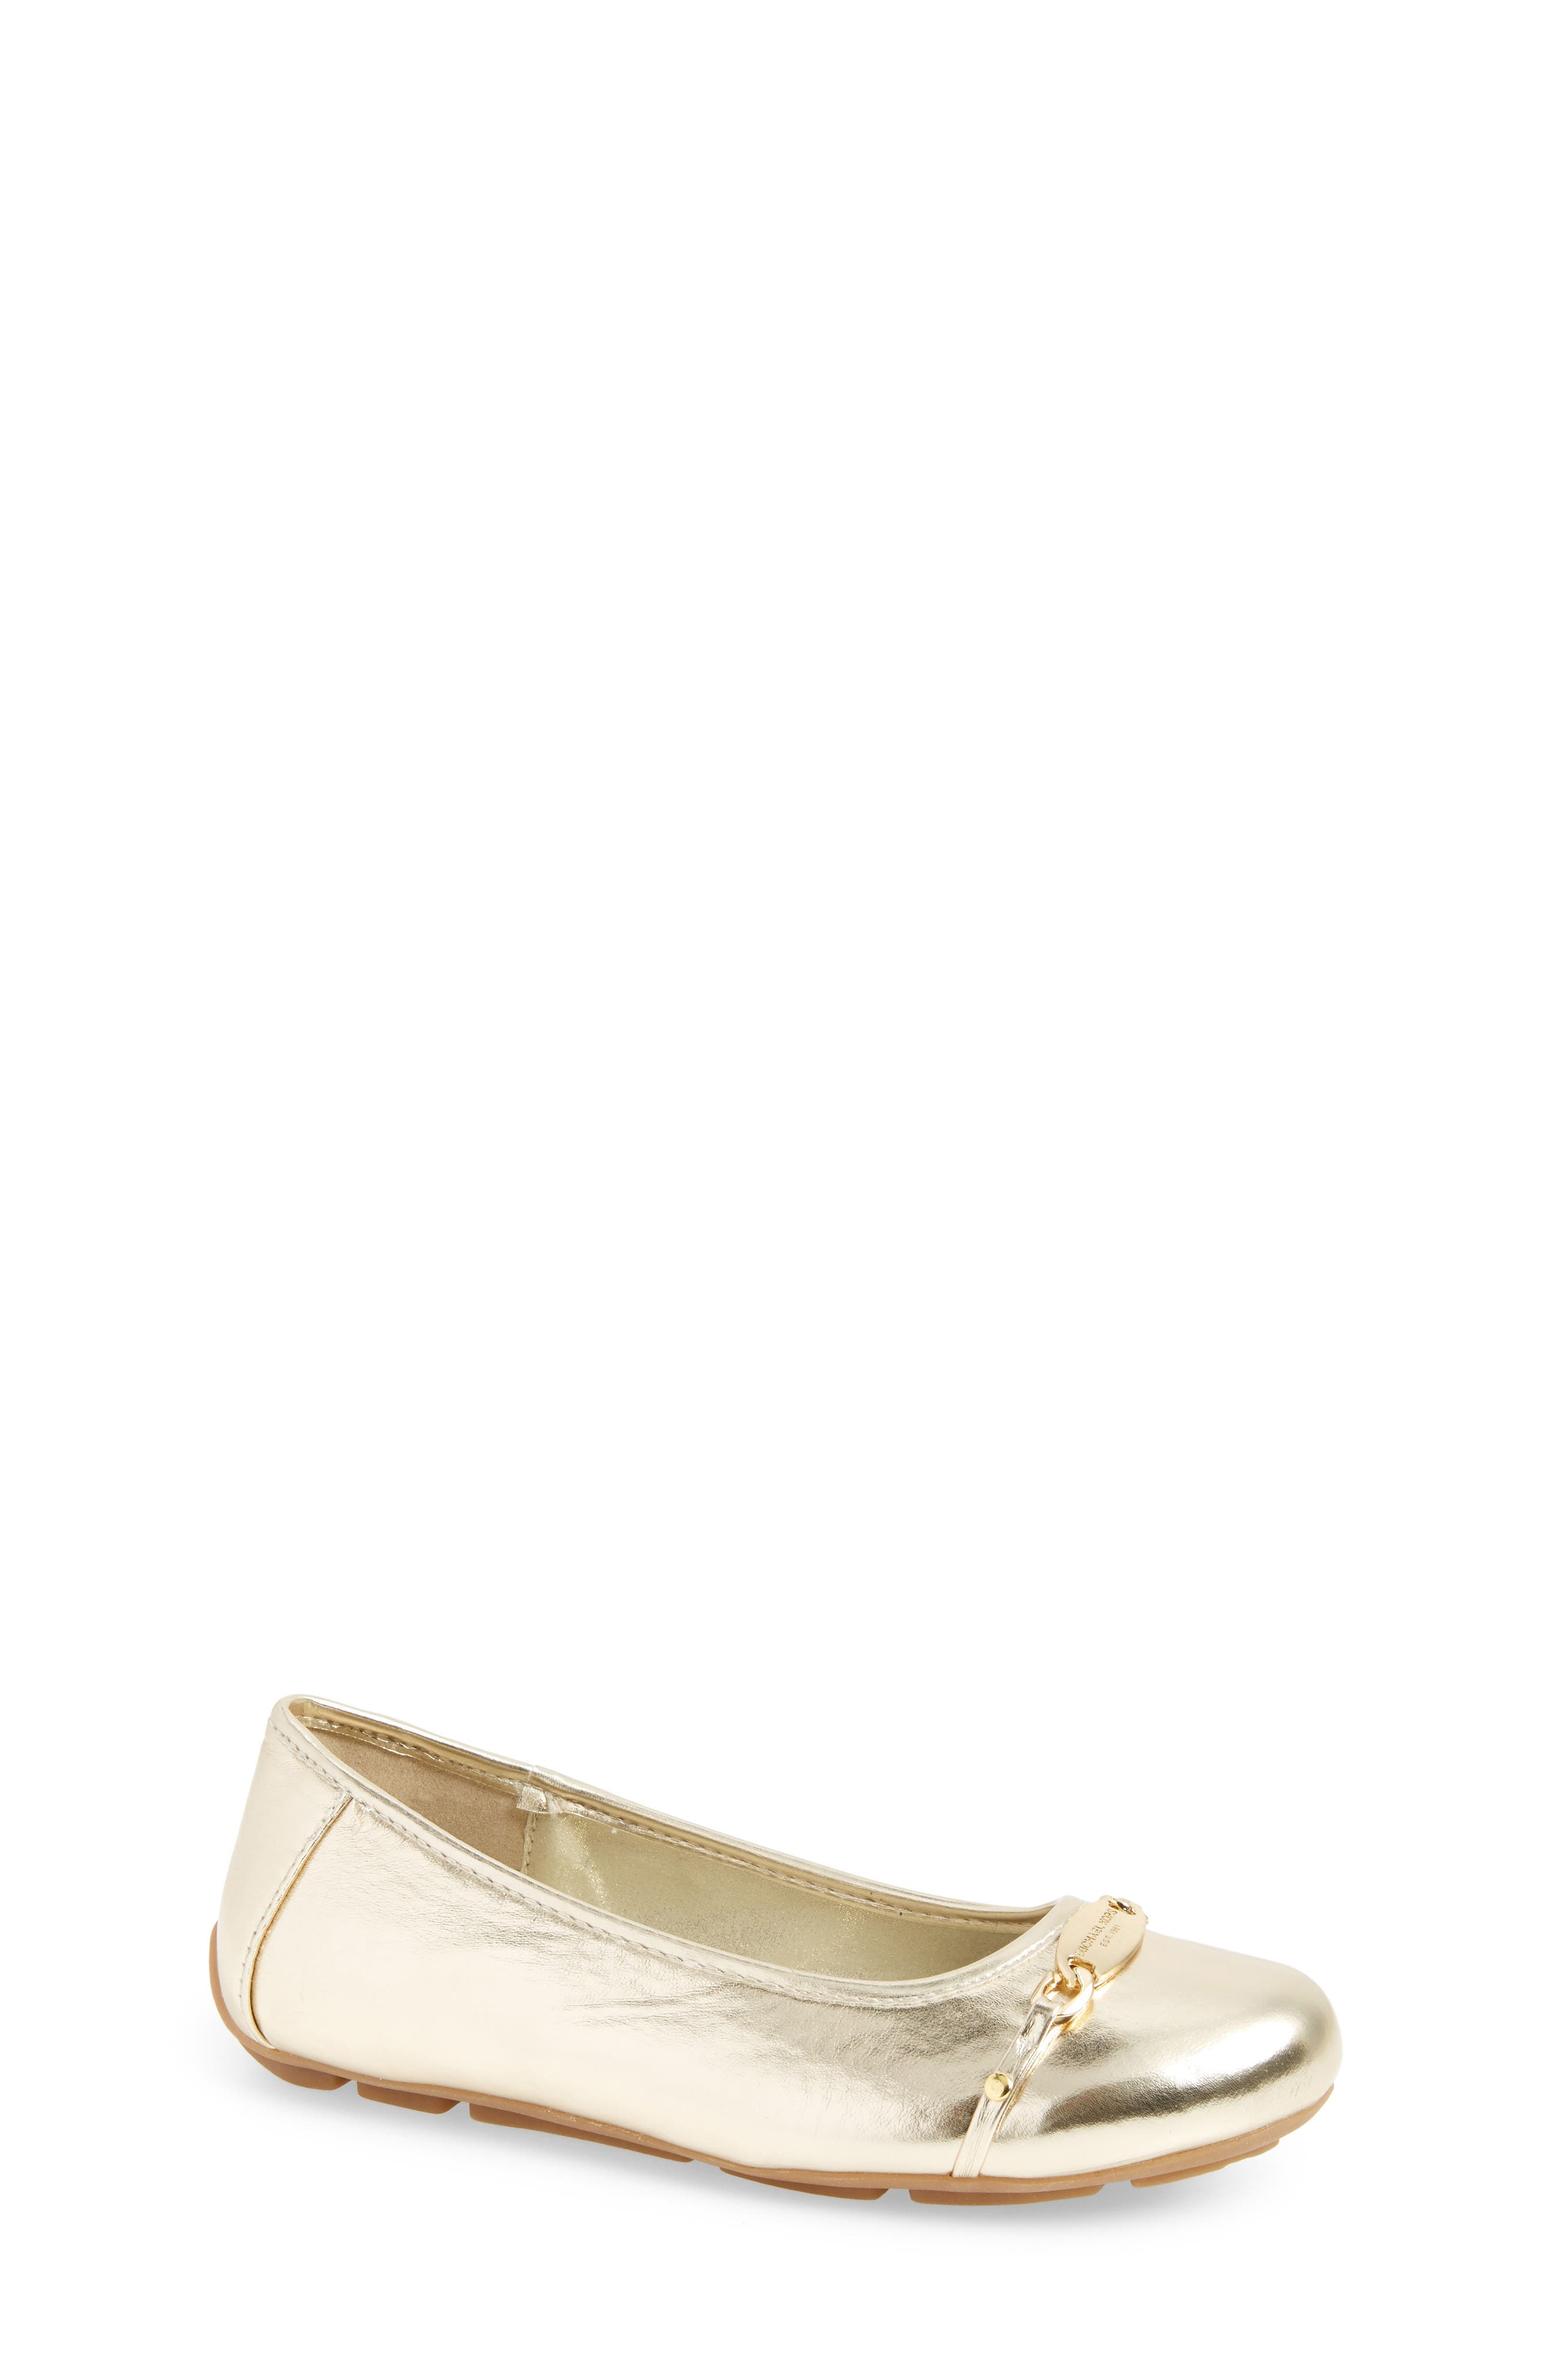 Rover Reeder Flat,                         Main,                         color, Gold